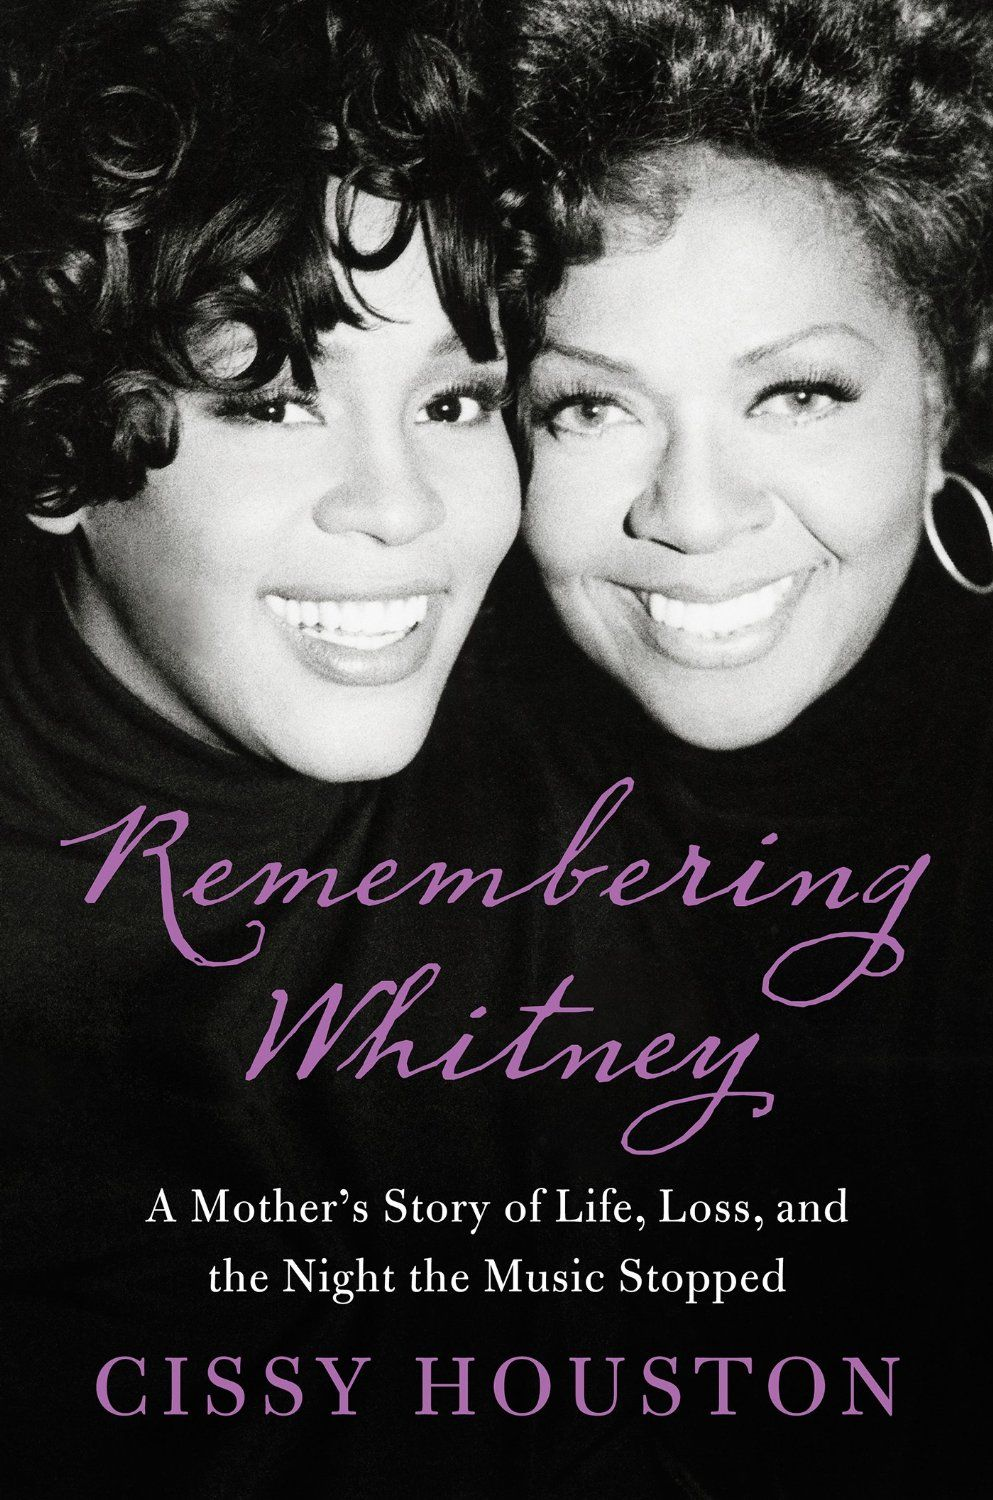 Remembering Whitney: My Story of Love, Loss, and the Night the Music Stopped  by Cissy Houston ($12.91) http://www.amazon.com/exec/obidos/ASIN/B008CH224K/hpb2-20/ASIN/B008CH224K Thank you Mrs. Cissy Houston for sharing Whitney with the WORLD. - Essentially Cissie did a very good job of showing how her childhood determined how she raised her children and how that ultimately affected Whitney in her adult life. - Her voice was the most beautiful voice that I have ever heard on this side of…